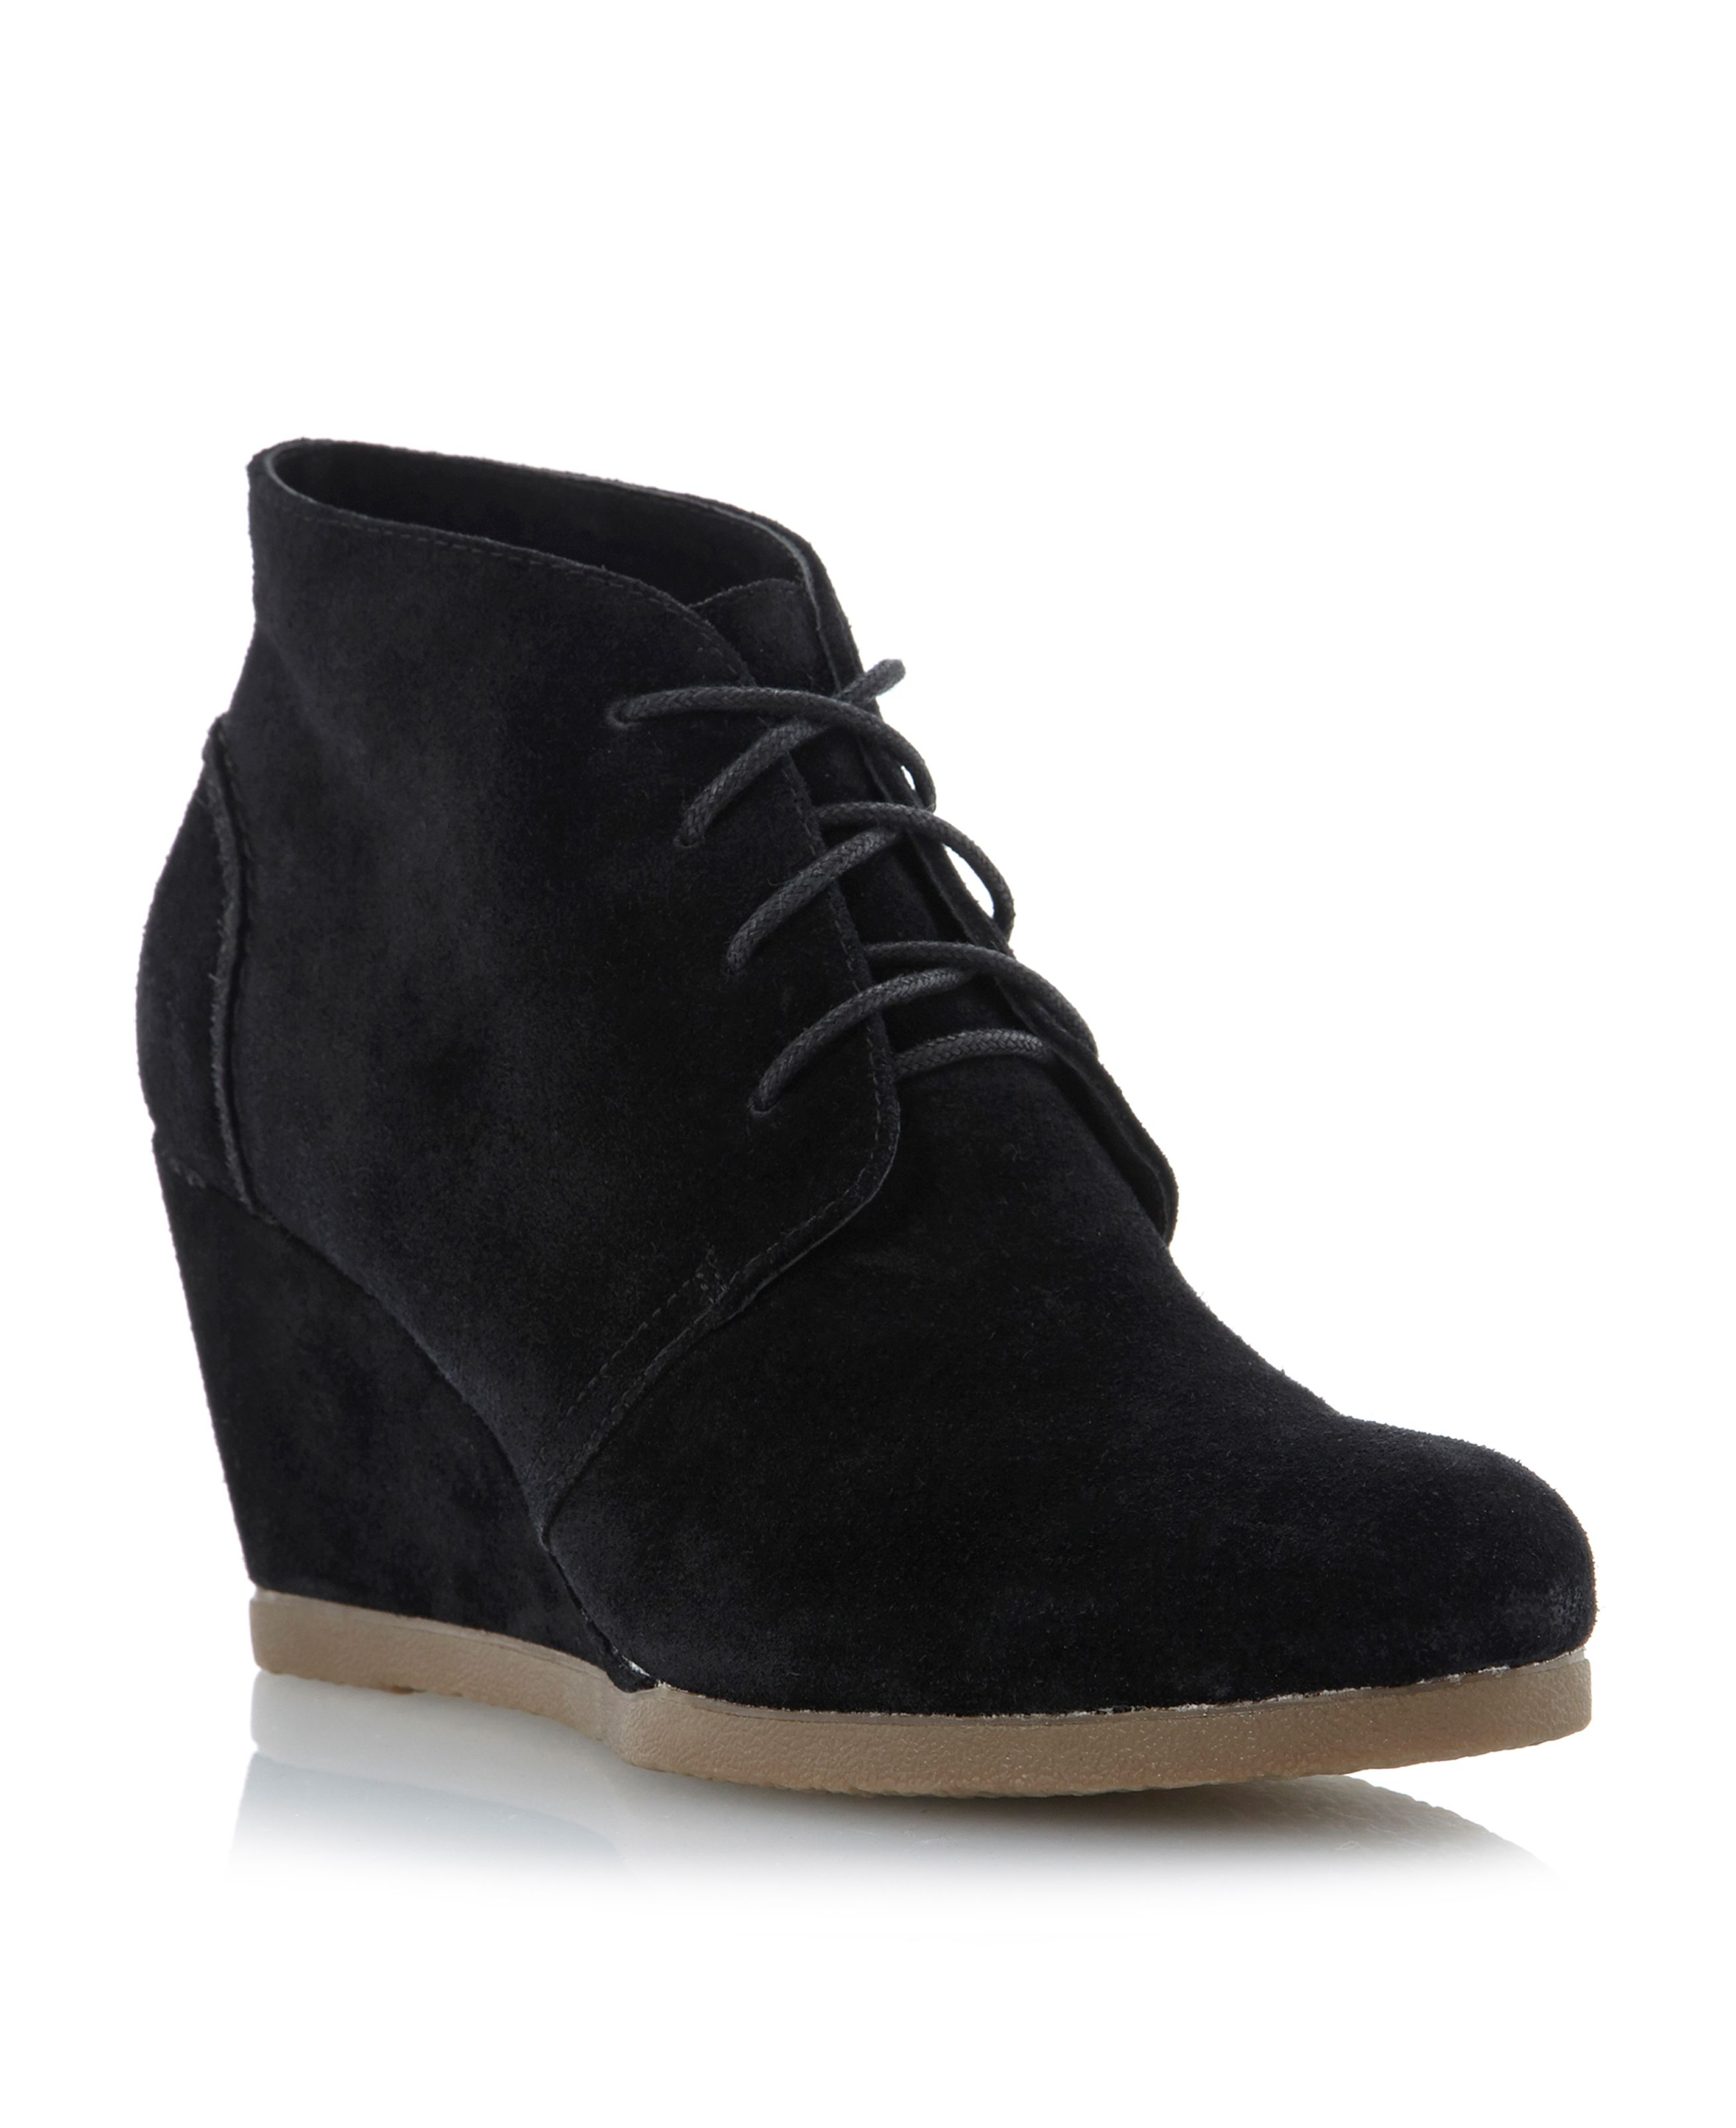 Praff crepe wedge lace up boots